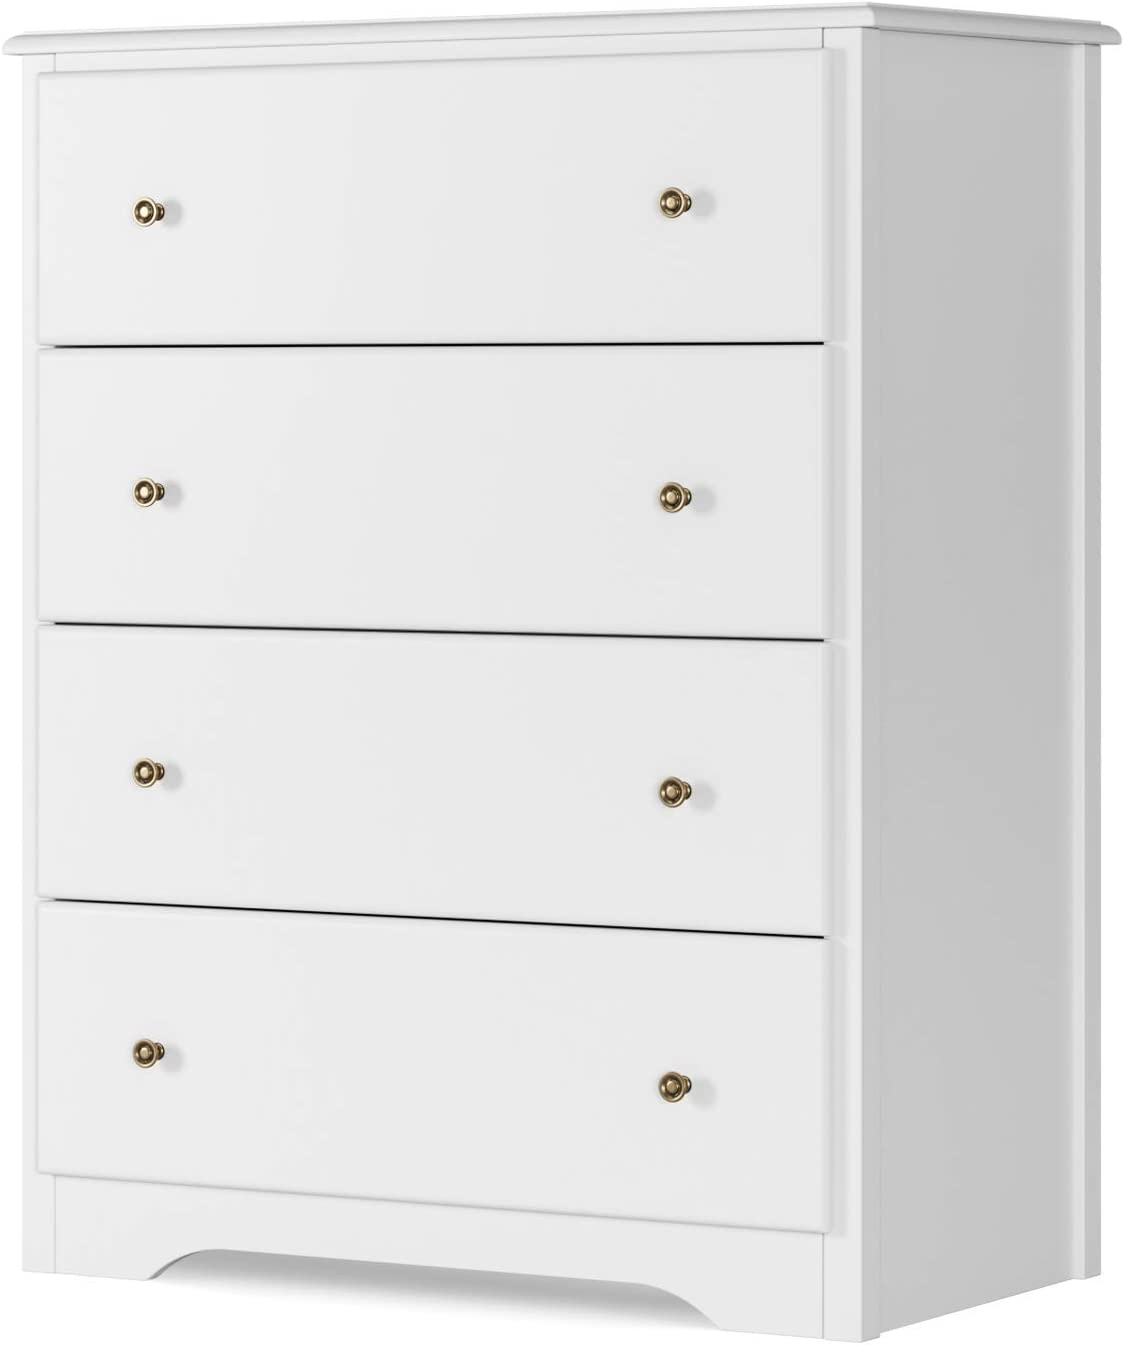 HOMECHO Dresser with 4 Drawers, Modern Chest of Drawers White, Dresser Chest with Wide Storage Space, Functional Organizer with Solid Wood Frame for Bedroom, Living Room, Closet, Entryway, Hallway